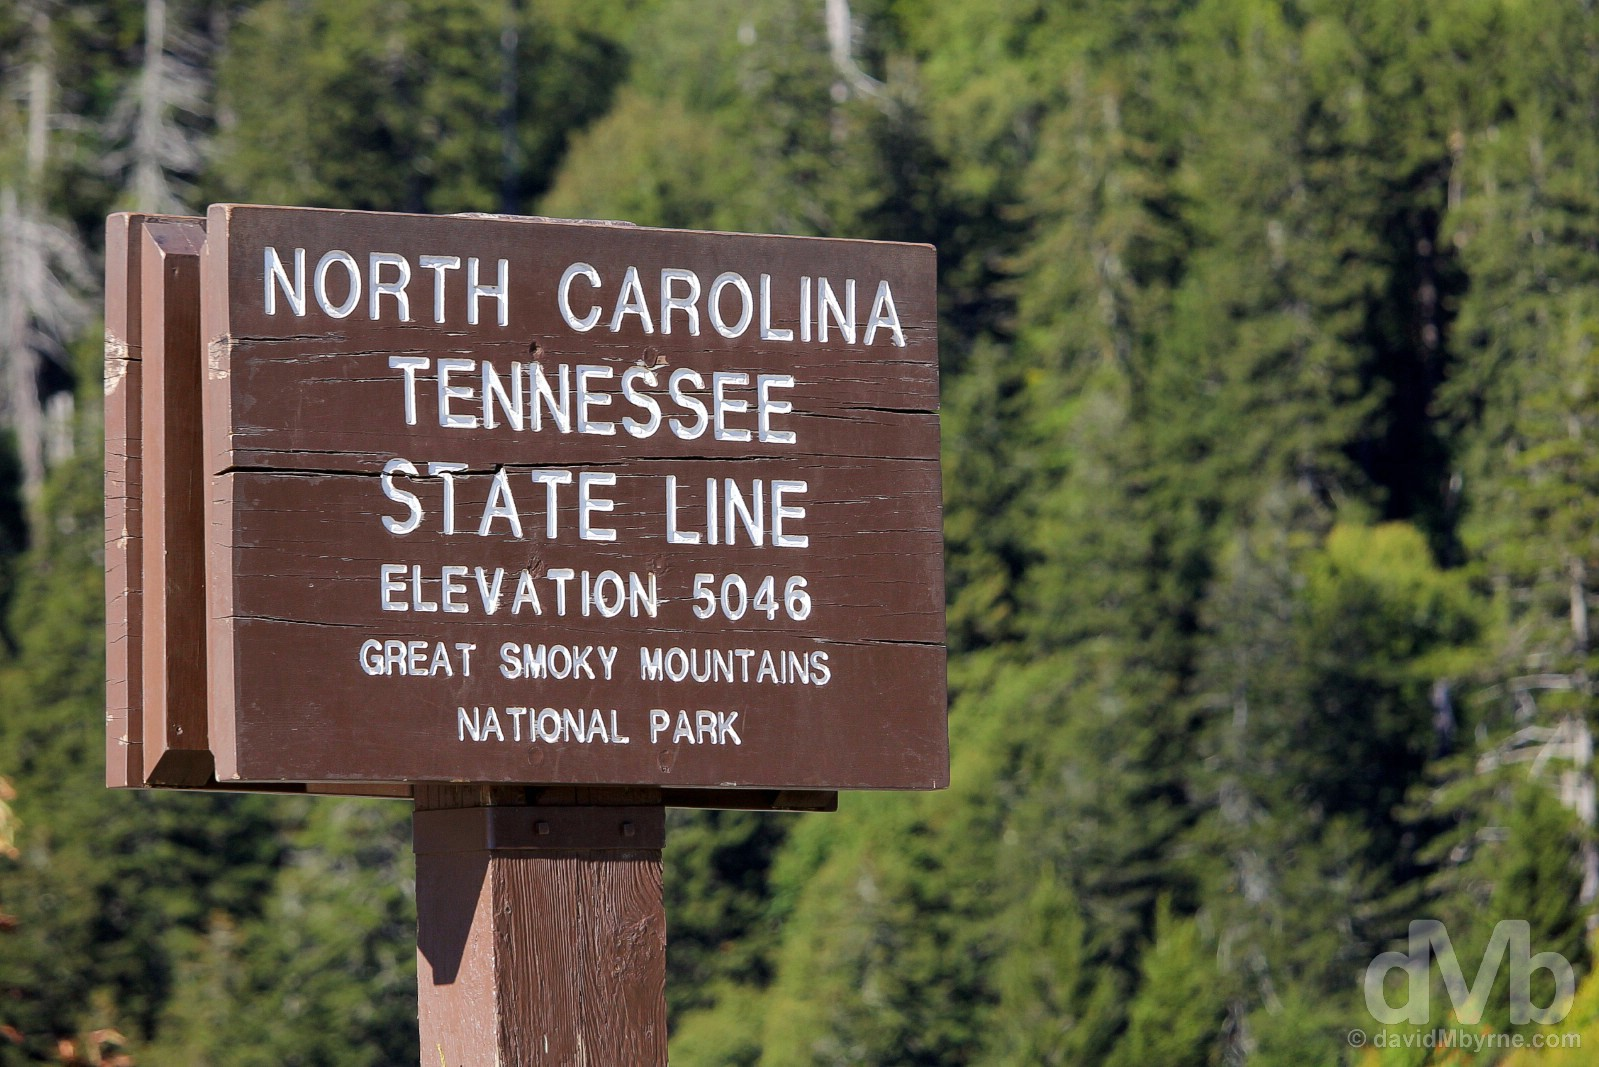 On the North Carolina-Tennessee state line atop Newfound Gap in Great Smoky Mountains National Park, USA. September 22, 2016.